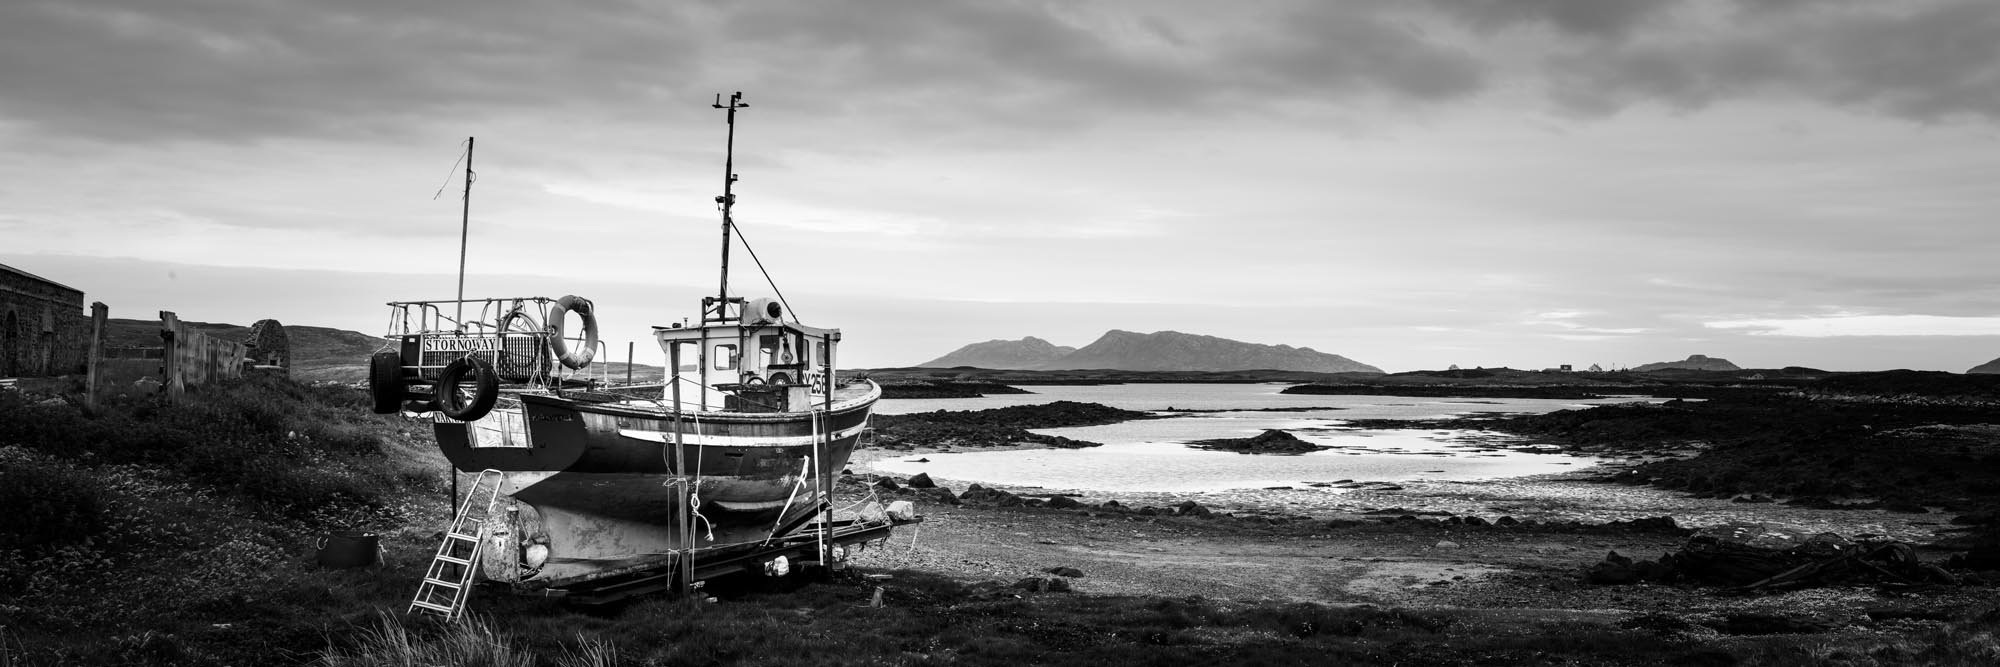 Fishing boat on the shores of a scottish lake b&w